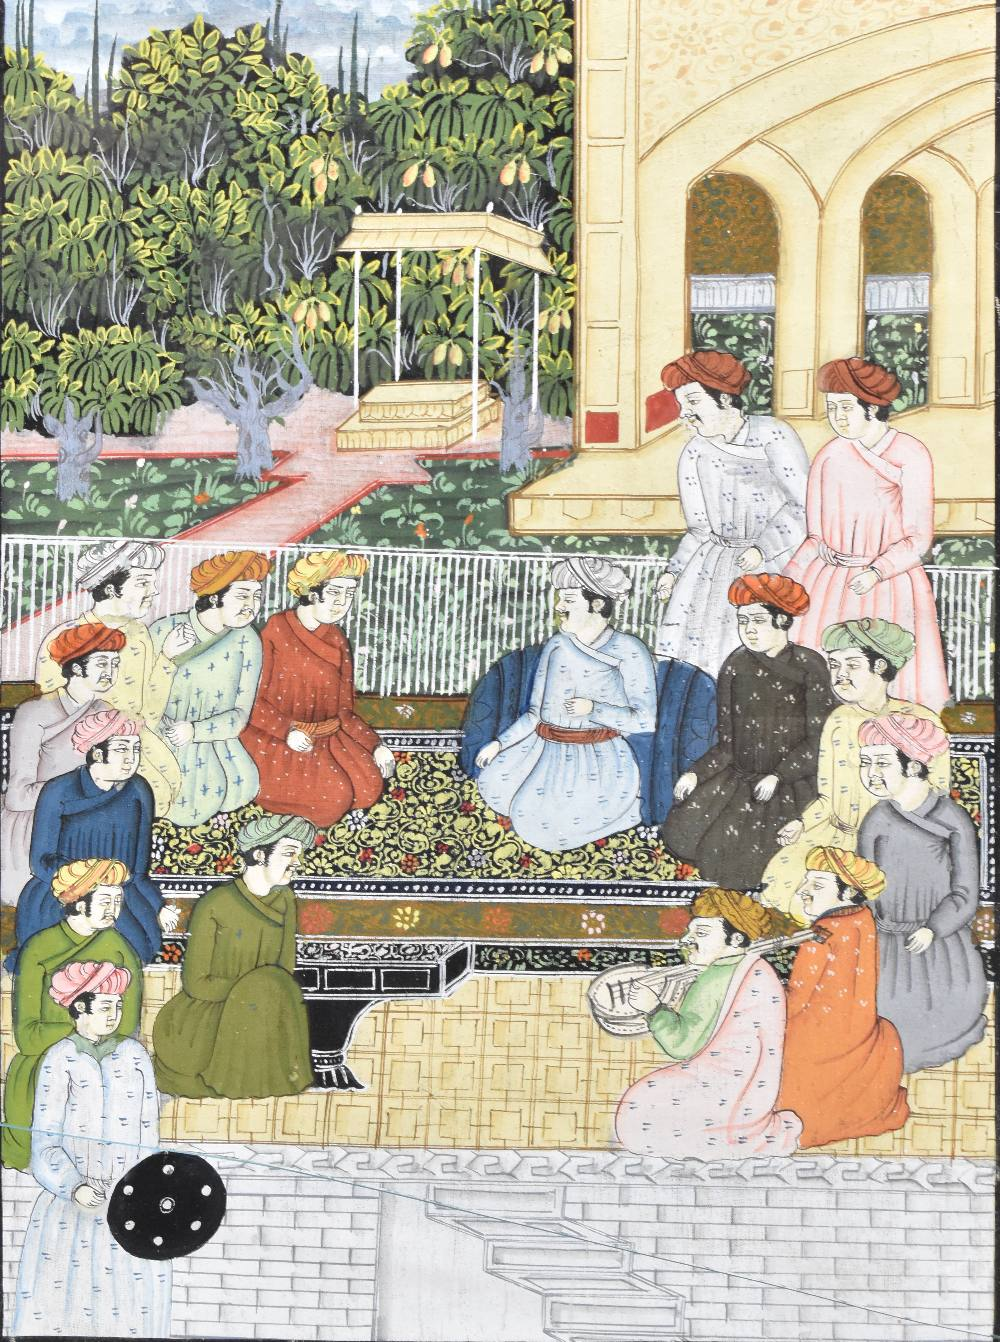 Two Indian Mughal watercolours, depicting figures beside temple scenes, largest 33x23cm, each framed - Image 3 of 3